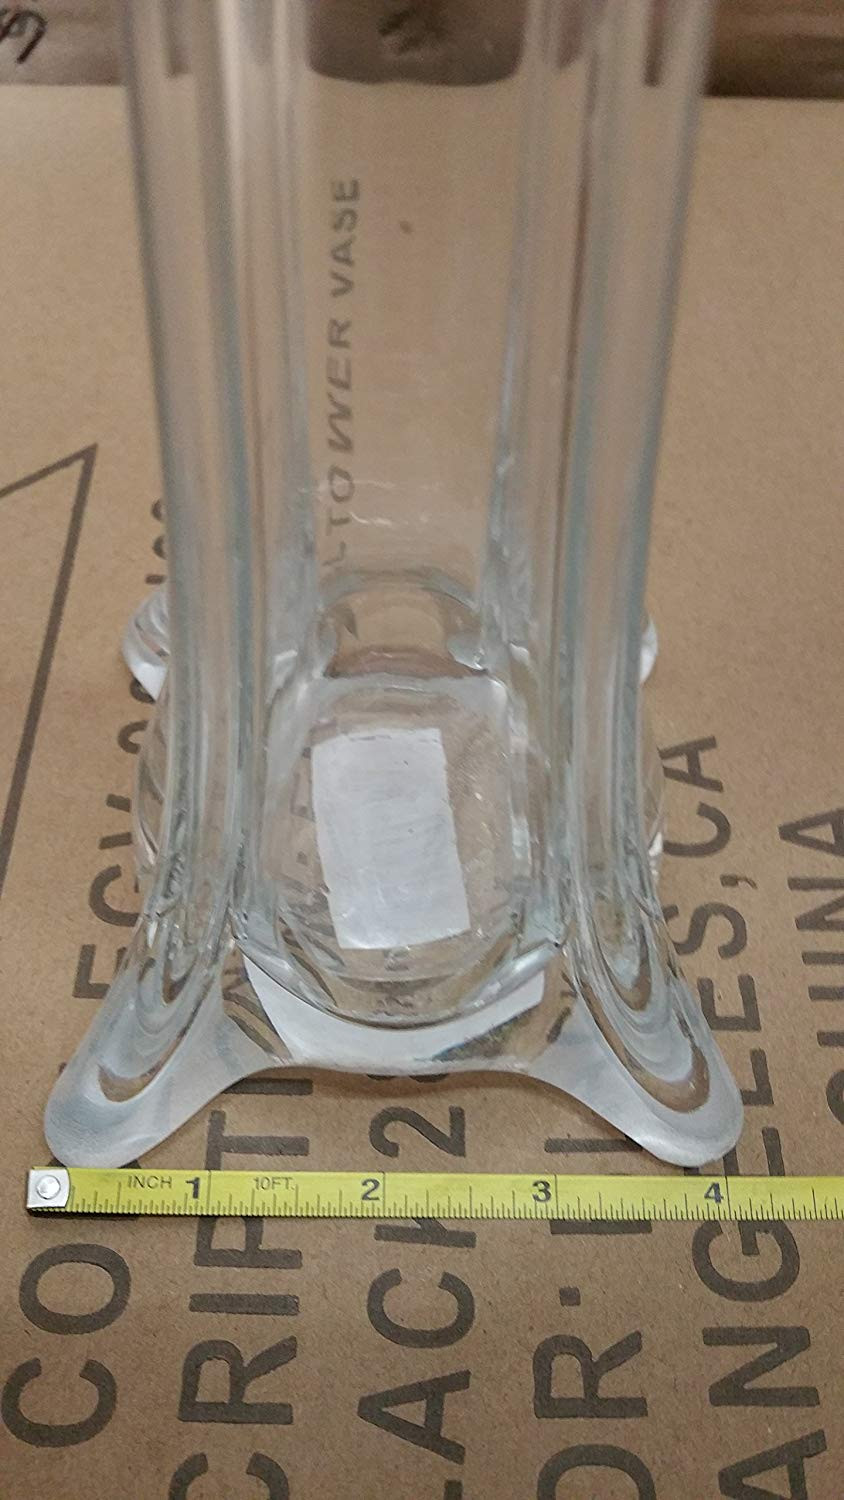 24 clear glass eiffel tower vases of amazon com eiffel tower vase 32 inch case of 12 by la crafts for amazon com eiffel tower vase 32 inch case of 12 by la crafts clear arts crafts sewing